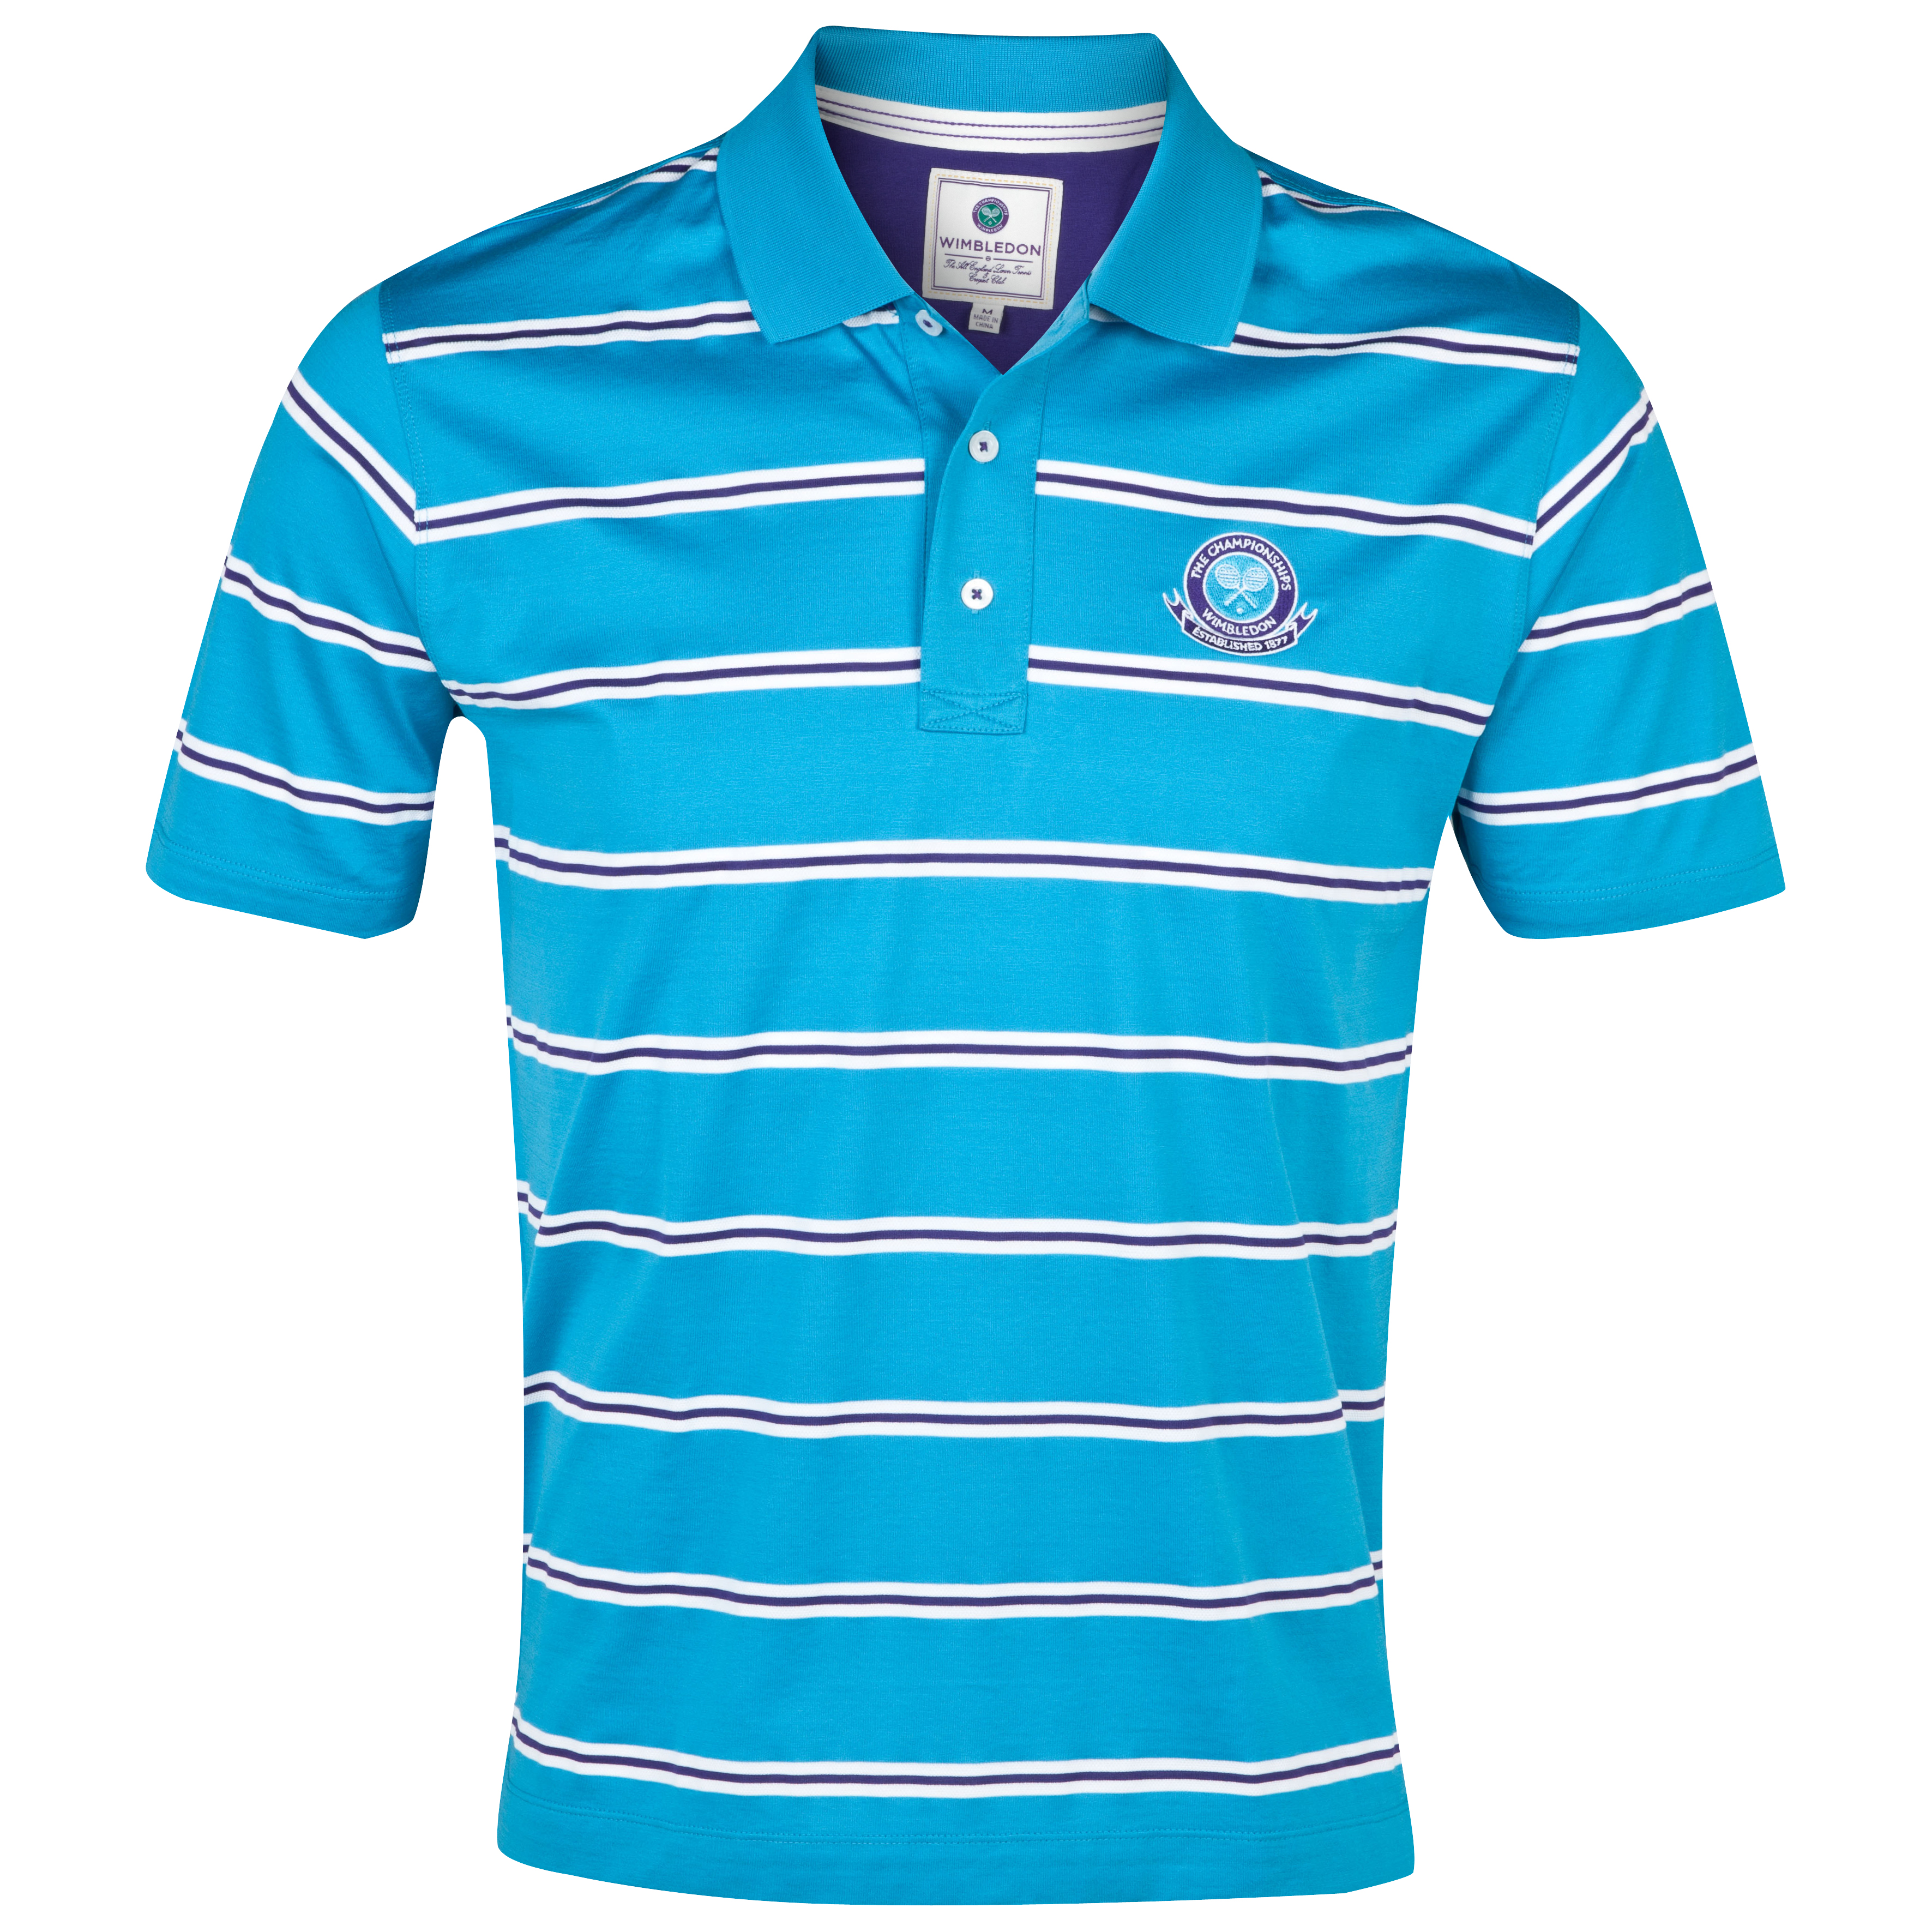 Wimbledon Mercerised Polo Shirt - Sea Blue